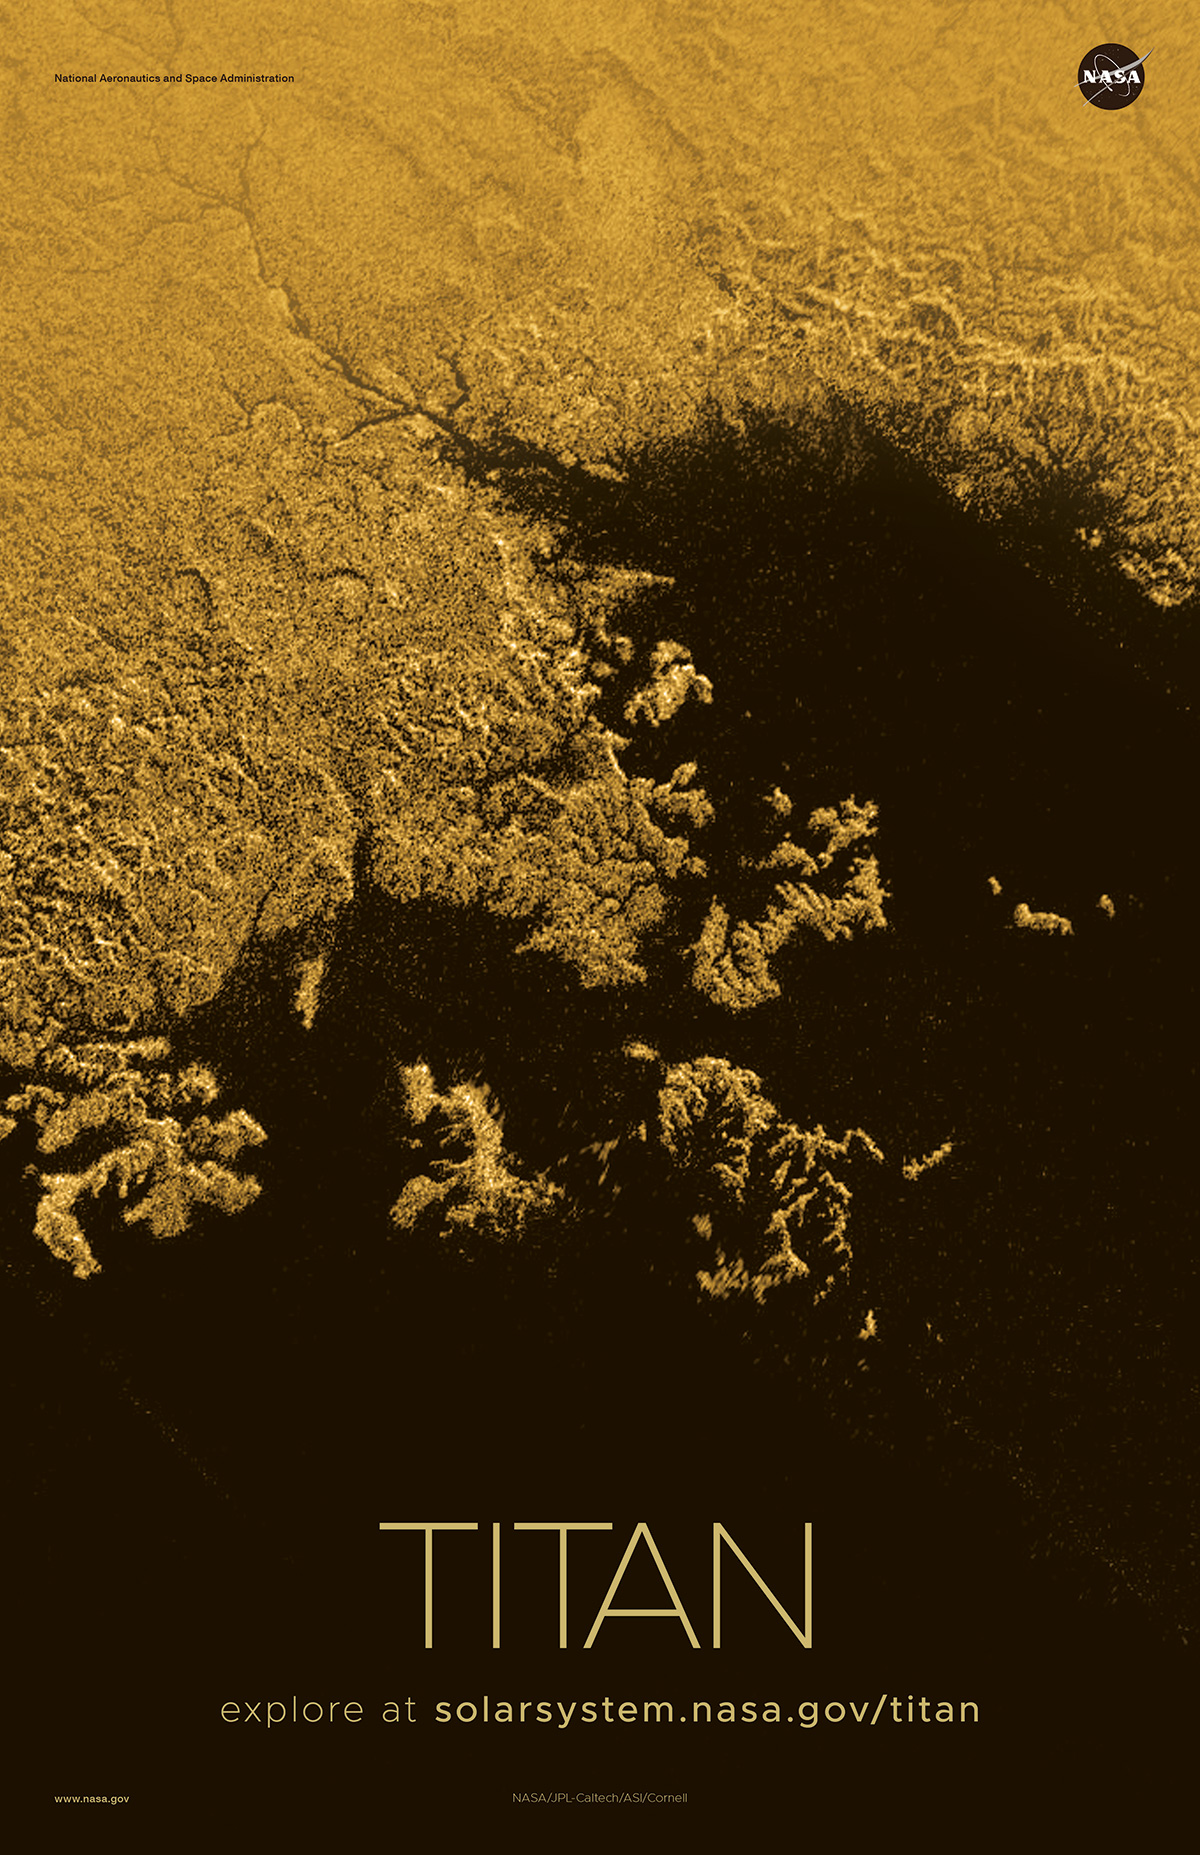 Aerial view of hydrocarbon sea on Titan.